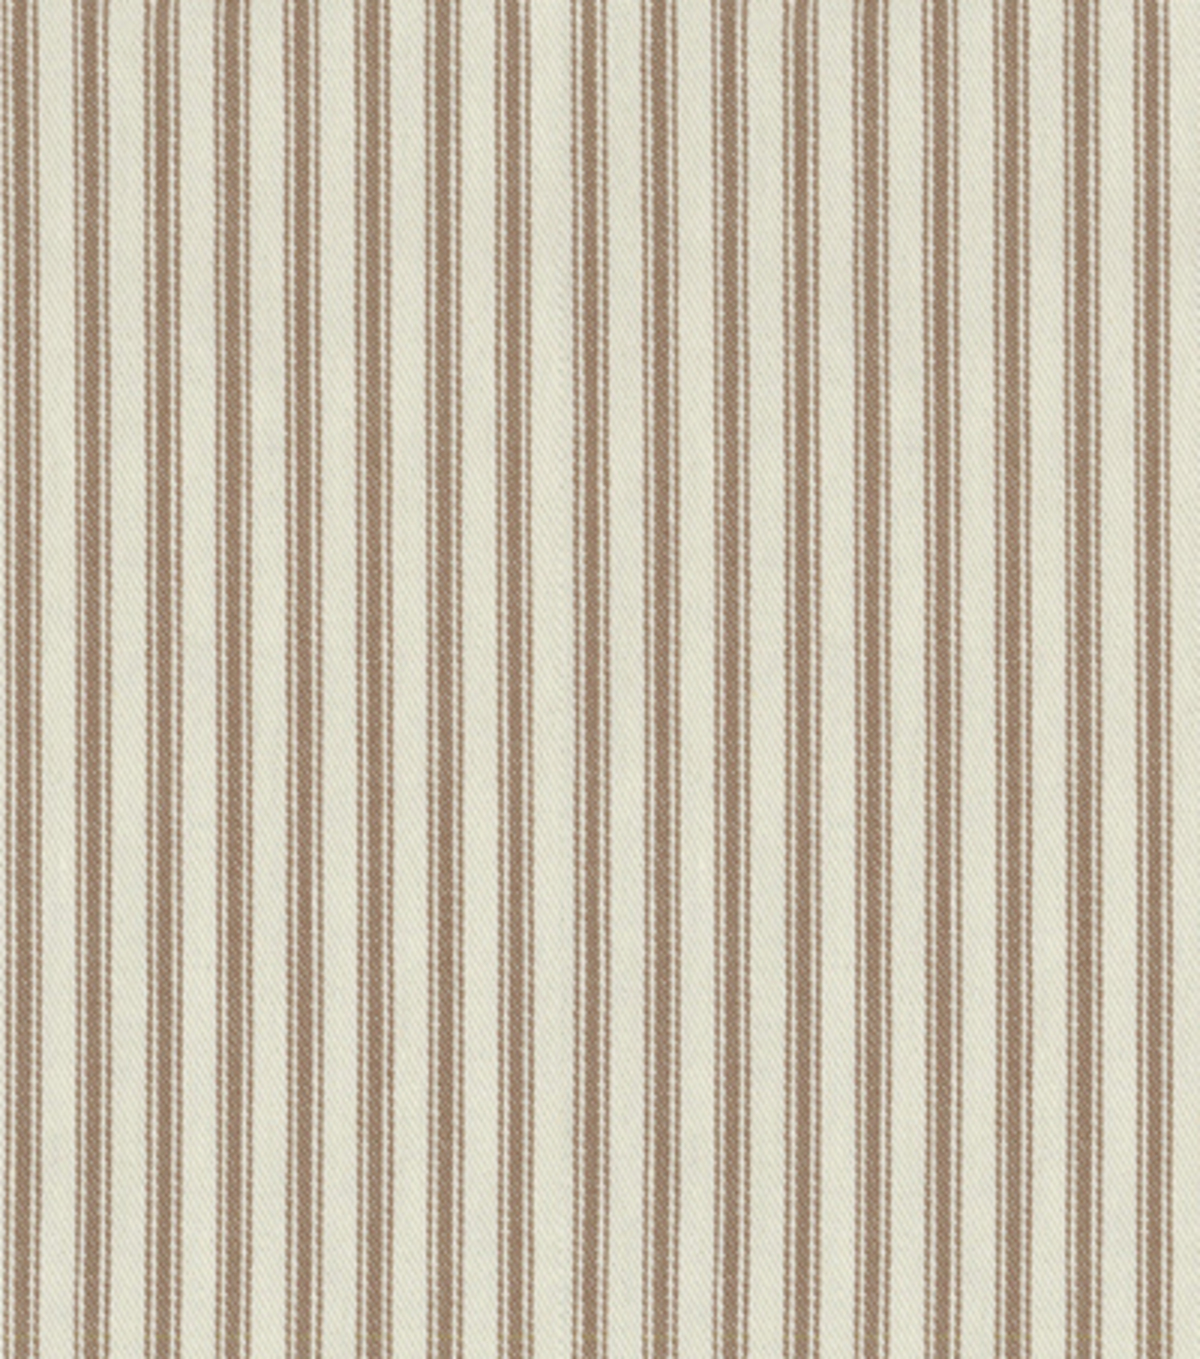 Waverly Multi-Purpose Decor Fabric-Classic Ticking/Chocolate